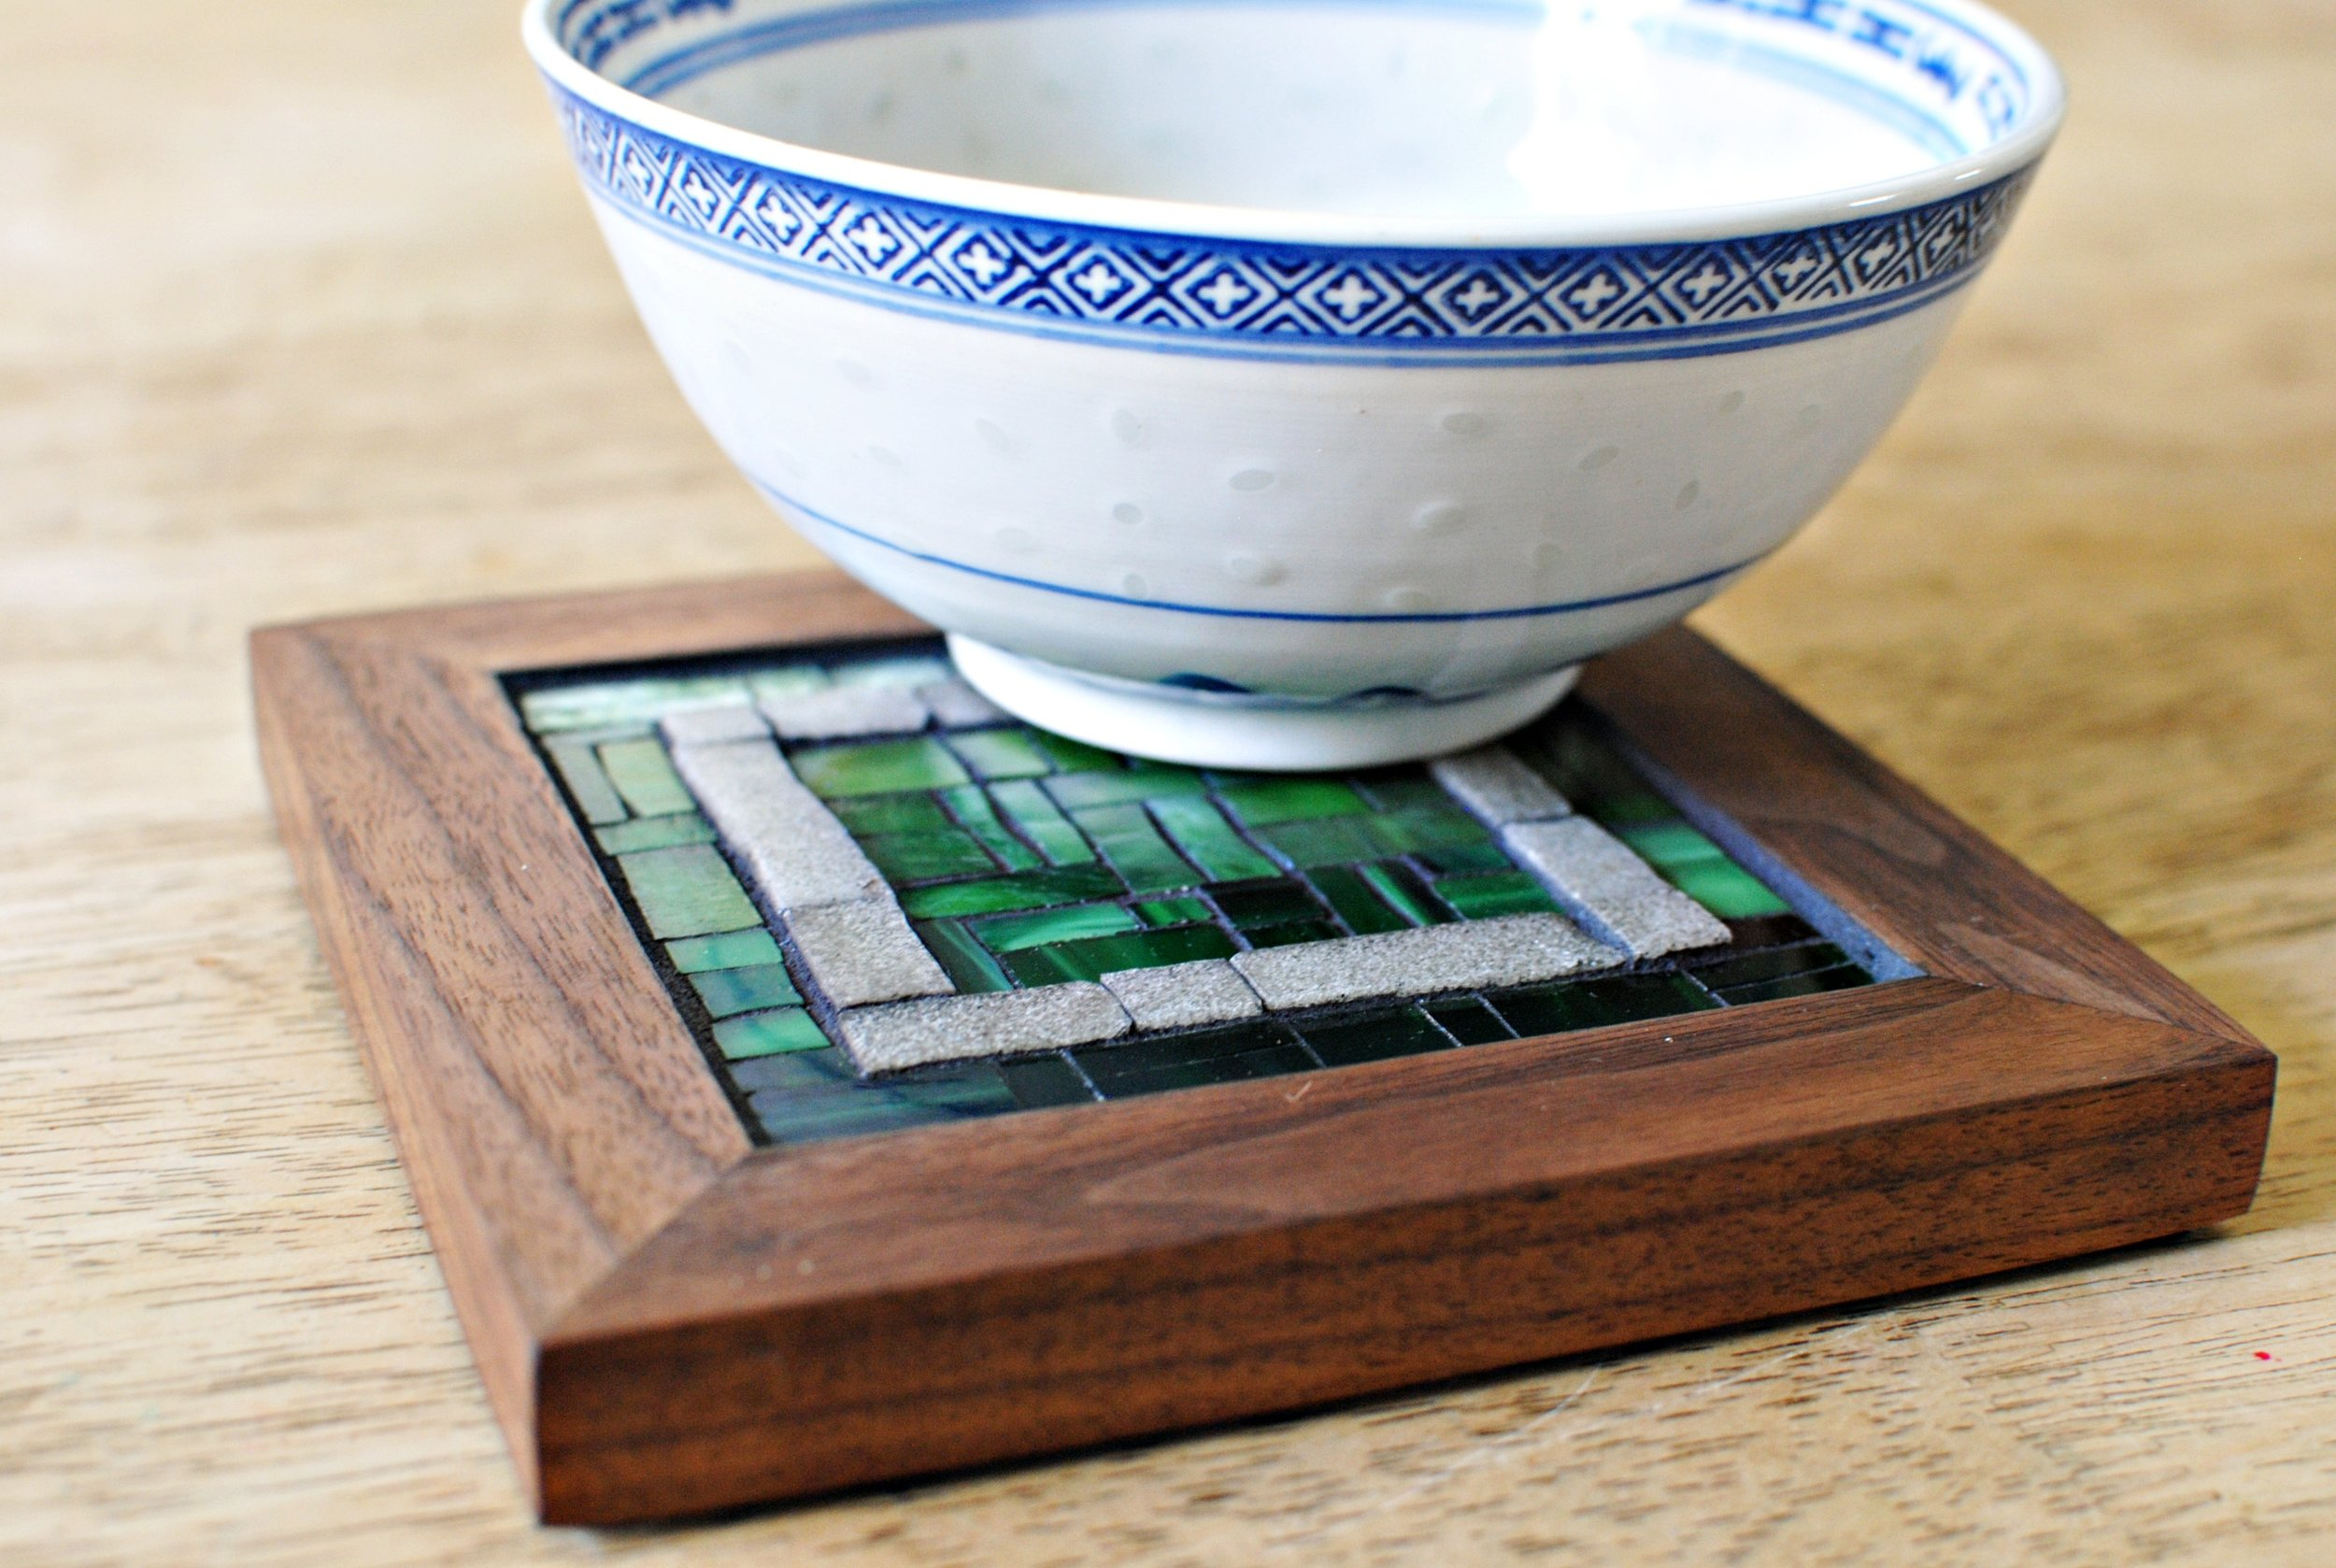 Forest mosaic trivet with bowl